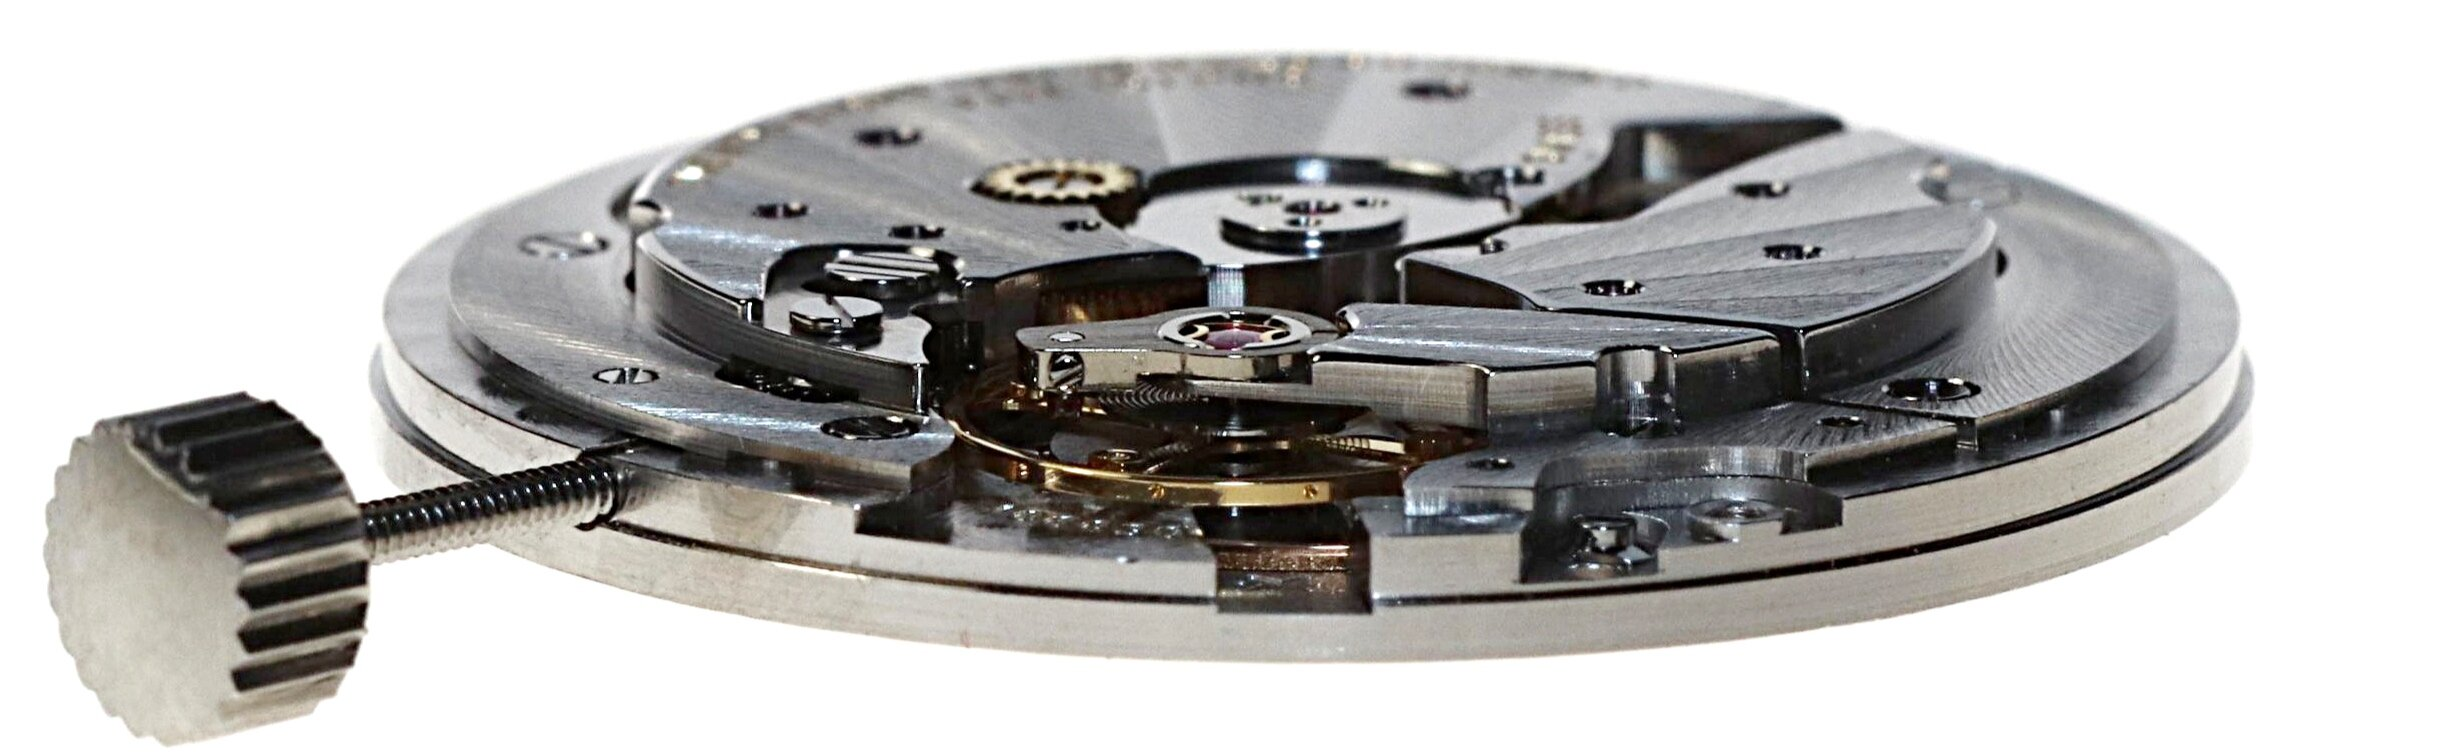 Profile view of the movement with the rotor weight removed. The step is to allow room for the rotor weight.